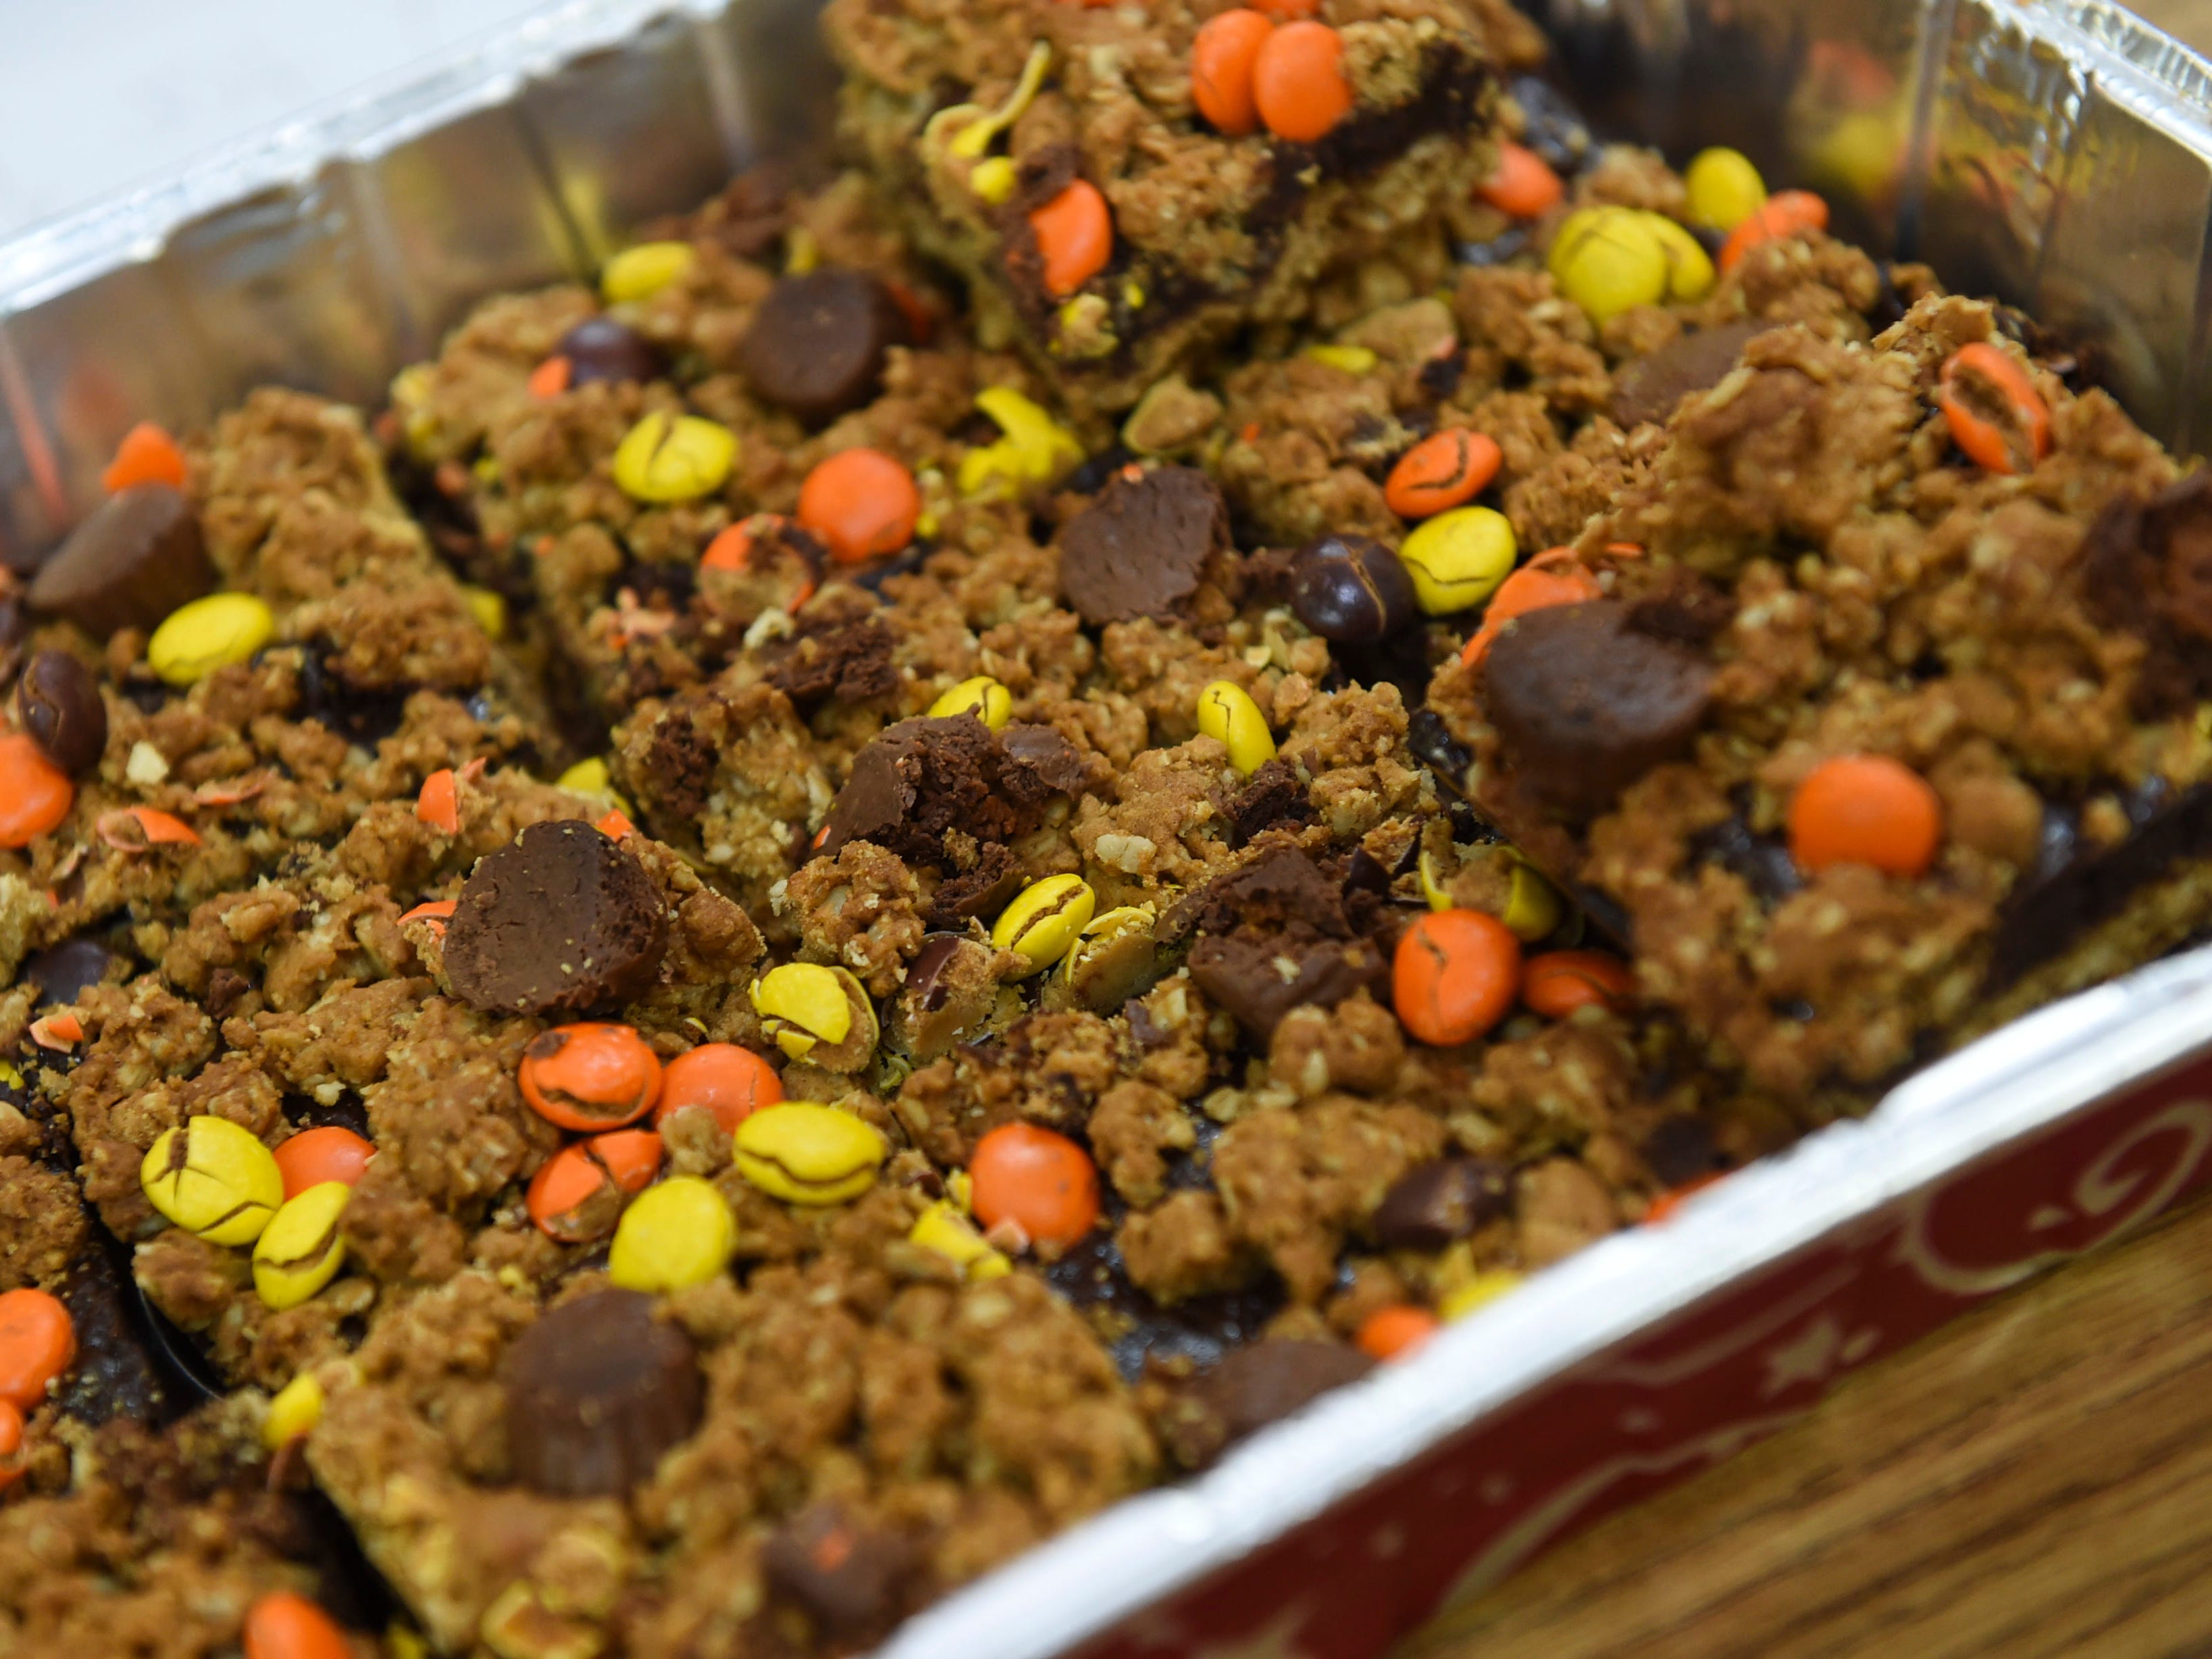 A baked treat displayed during the 5th Annual Ysrael School of Business Retail Bazaar and Entrepreneur Fair at Our Lady of Mount Carmel Catholic School in Agat, Jan. 18, 2019.